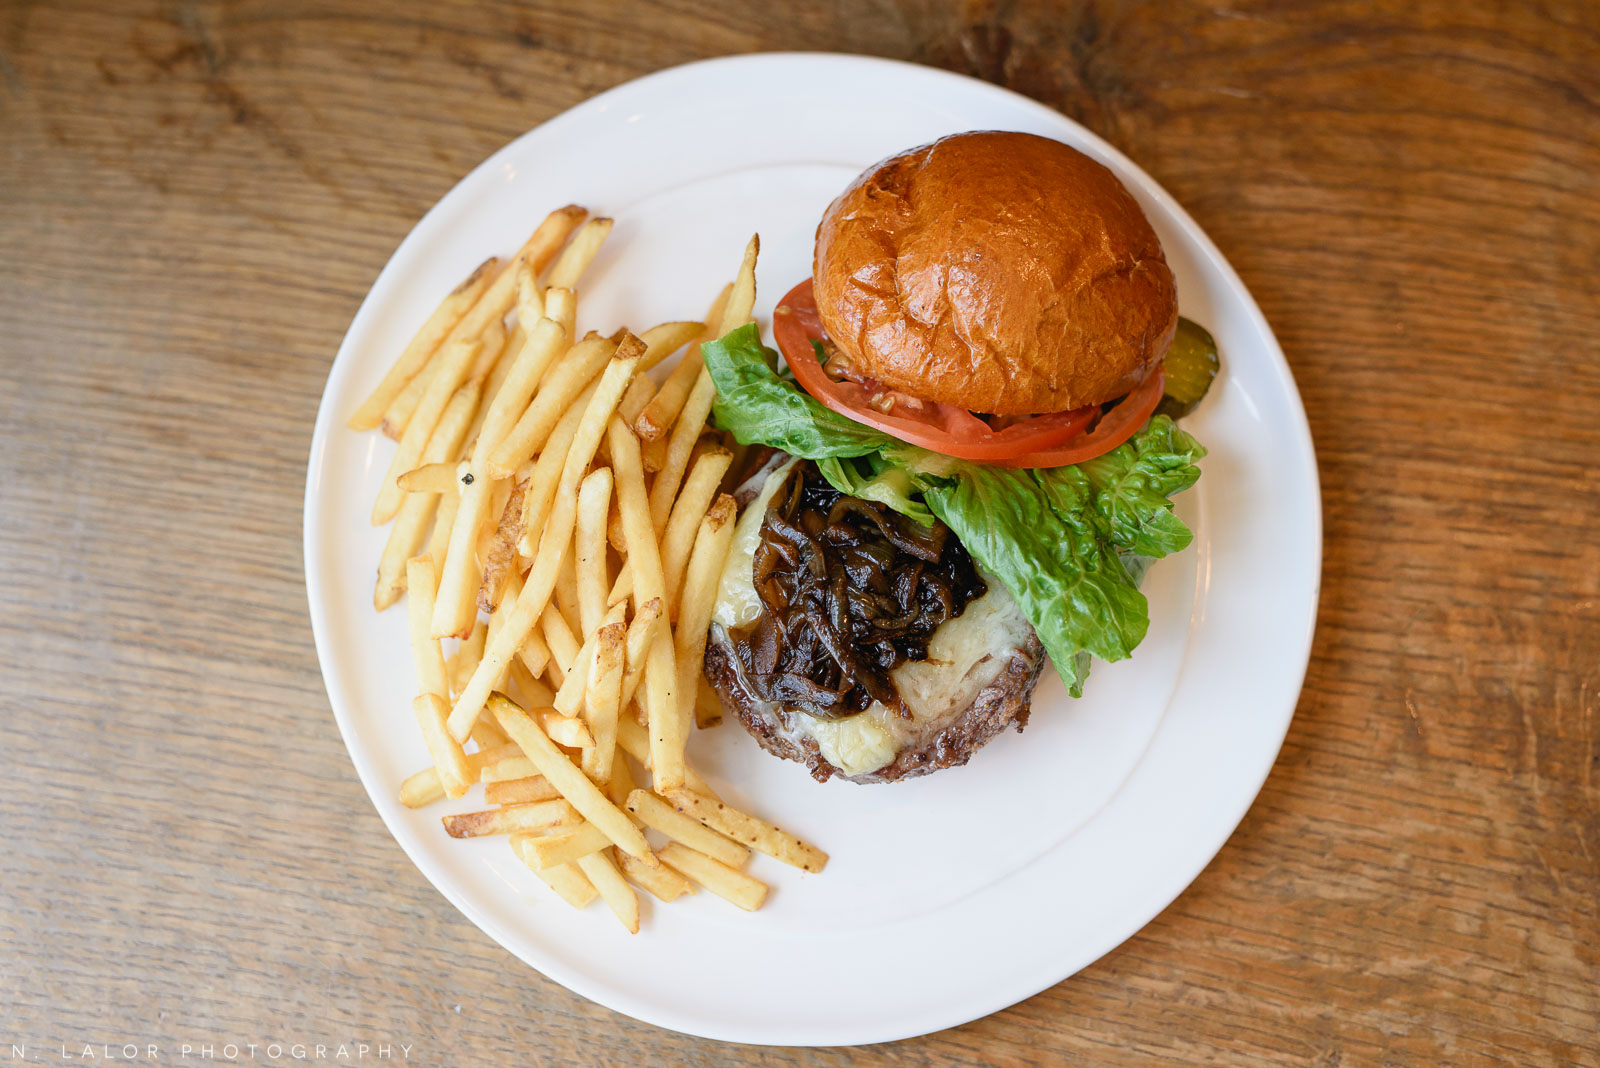 Burger with fries. Ada's Kitchen + Coffee in Riverside, Connecticut. Image by N. Lalor Photography.